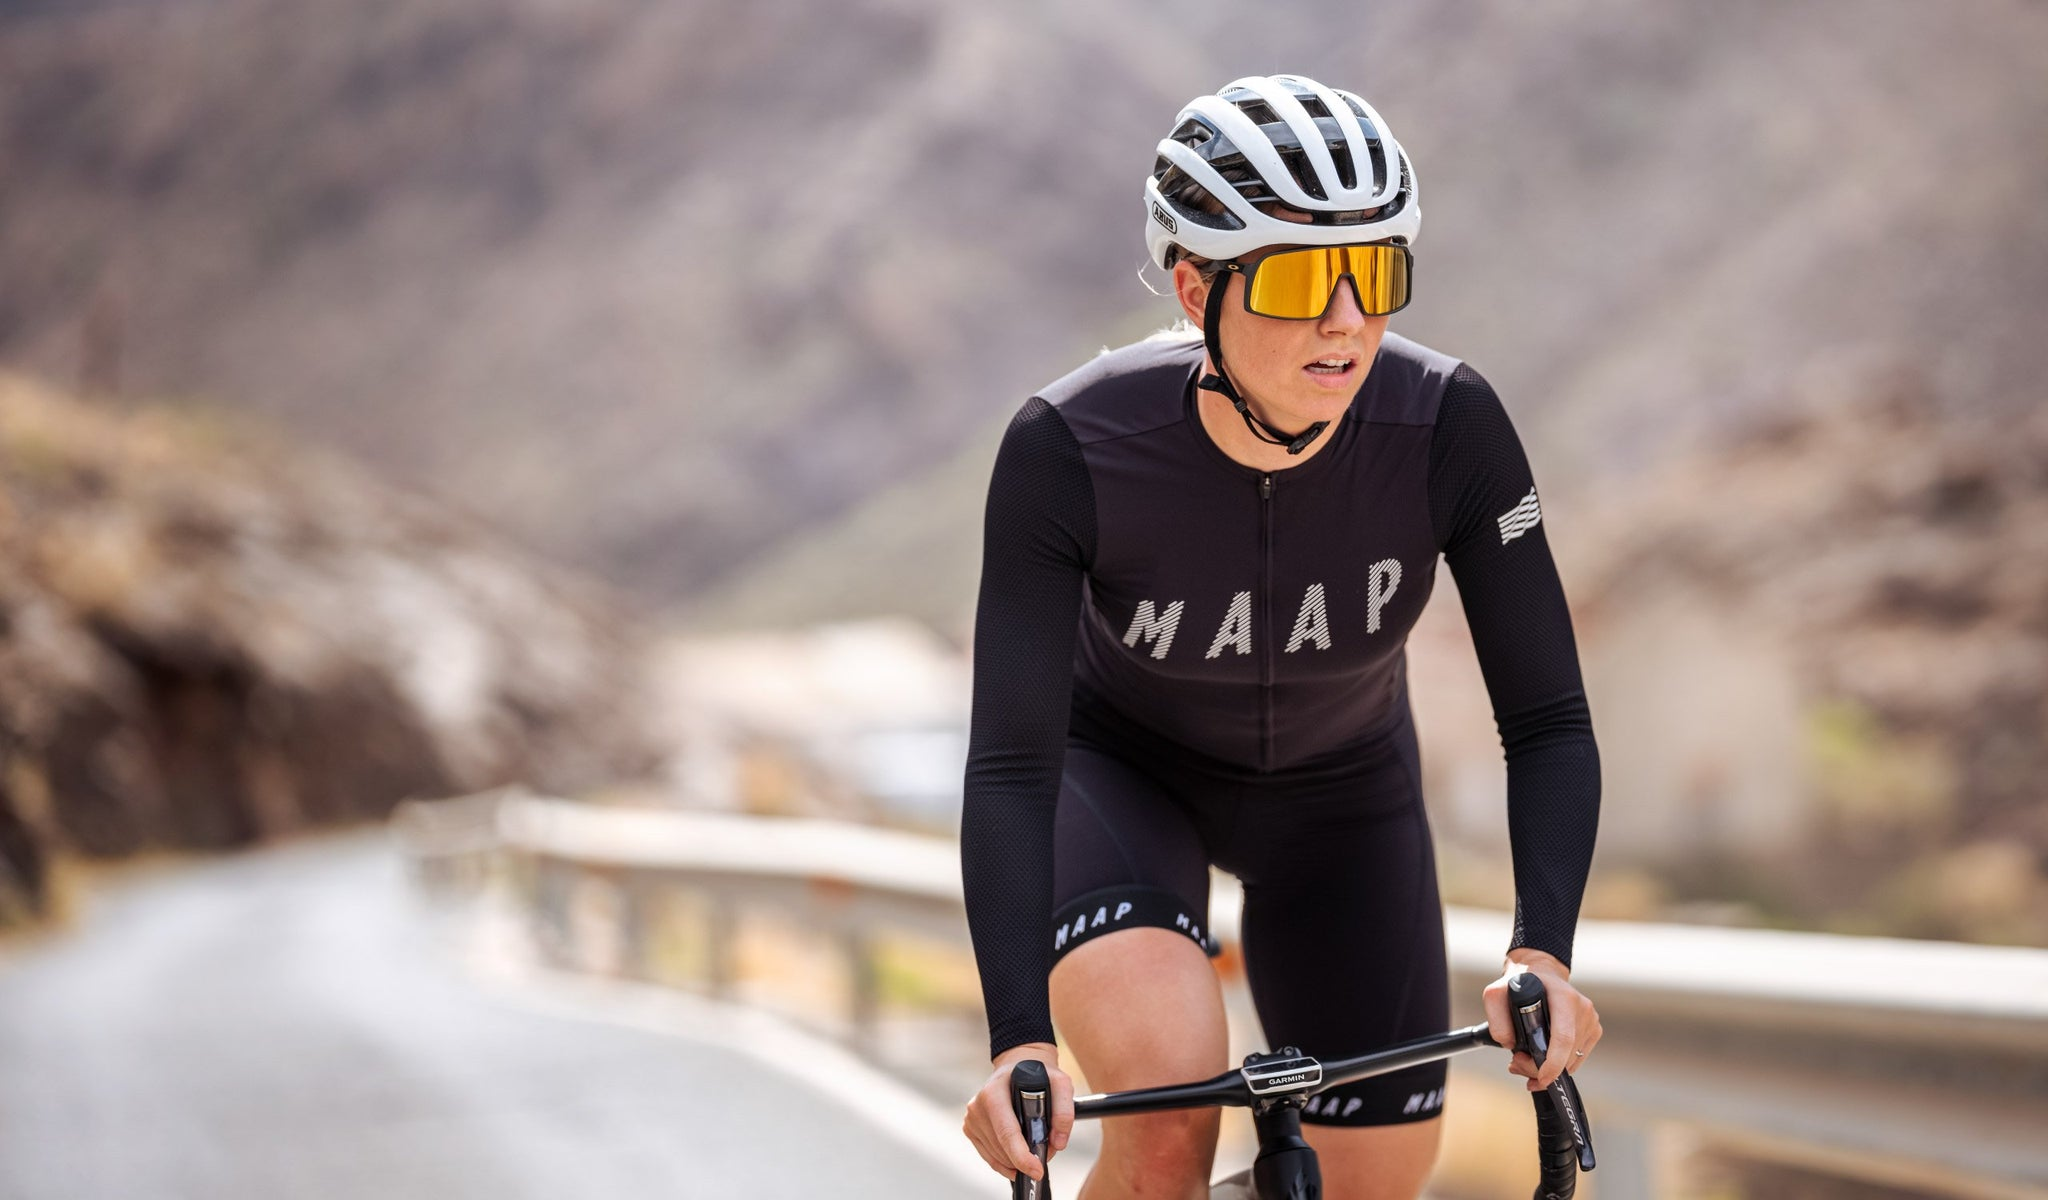 MAAP Women's Echo Pro Base Long Sleeve Cycling Jersey in Black for riding in mild weather conditions.